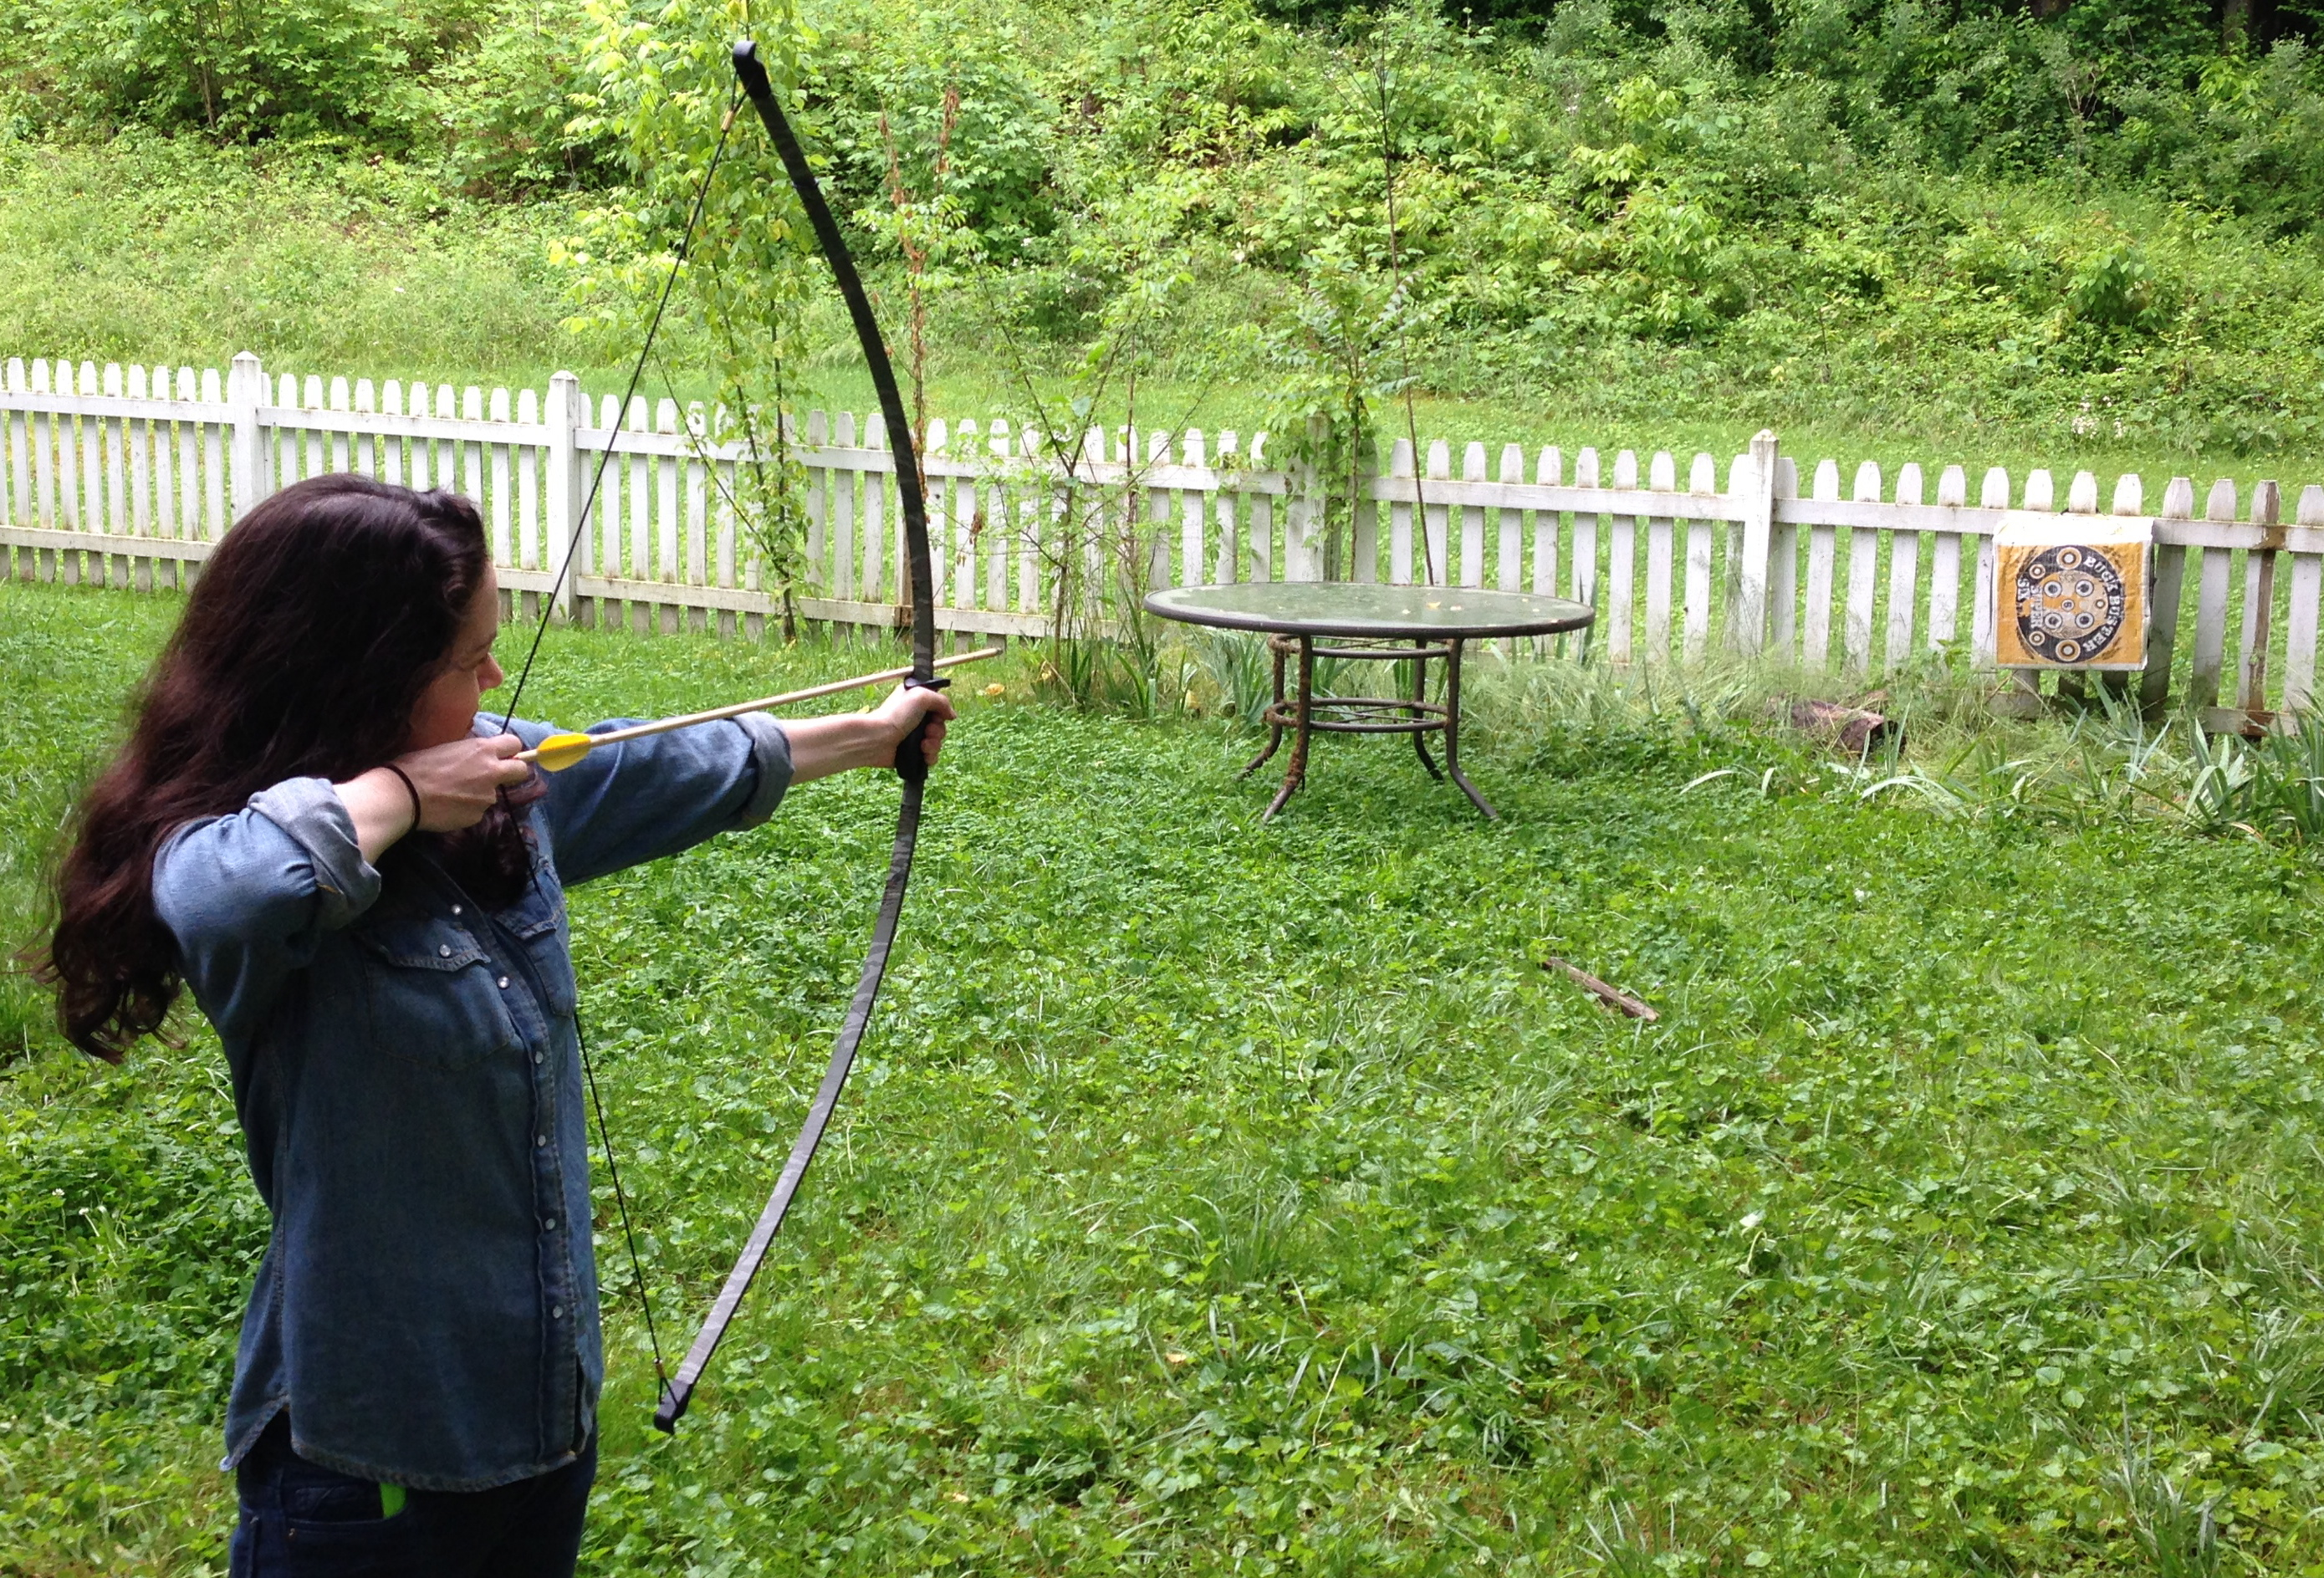 I Want to Shoot Archery. But Which Bow is Right for Me? - Archery 360